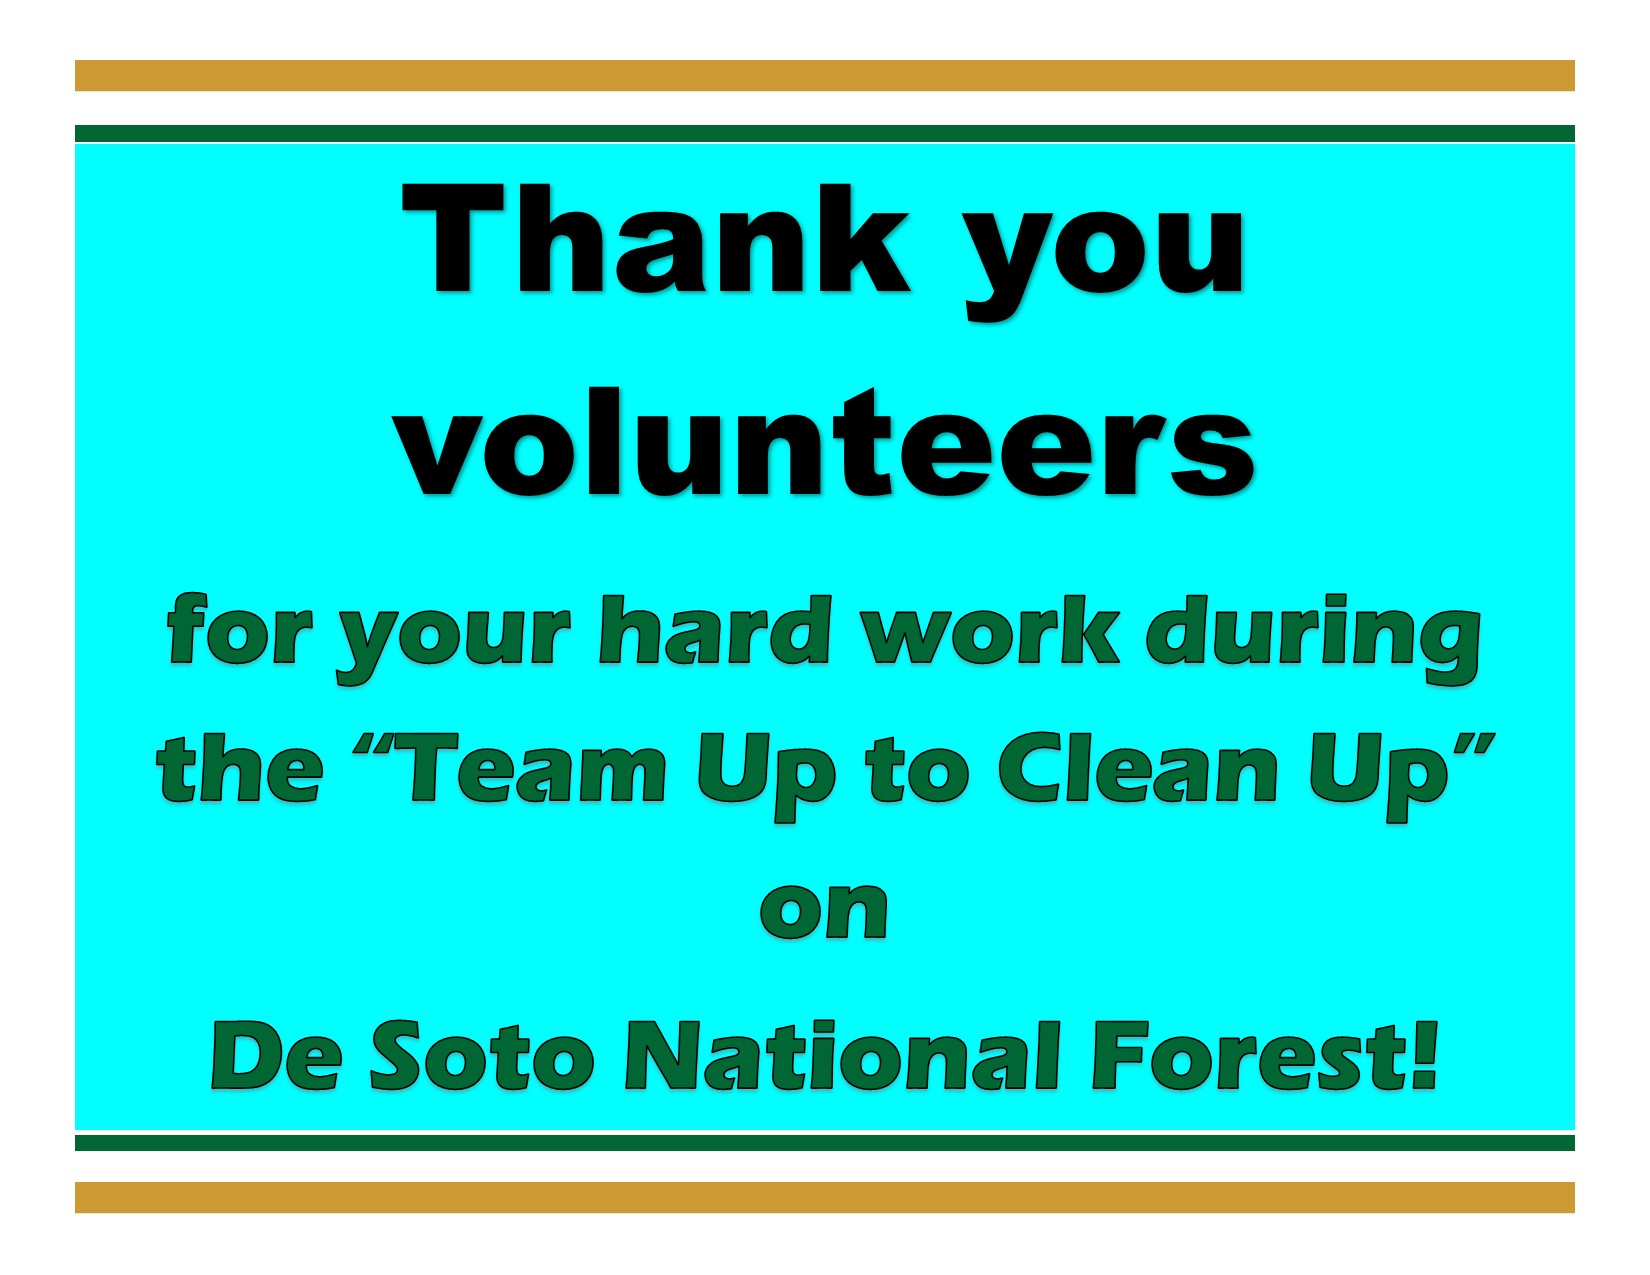 sign saying: De Soto thanks volunteers for team up to cleanup